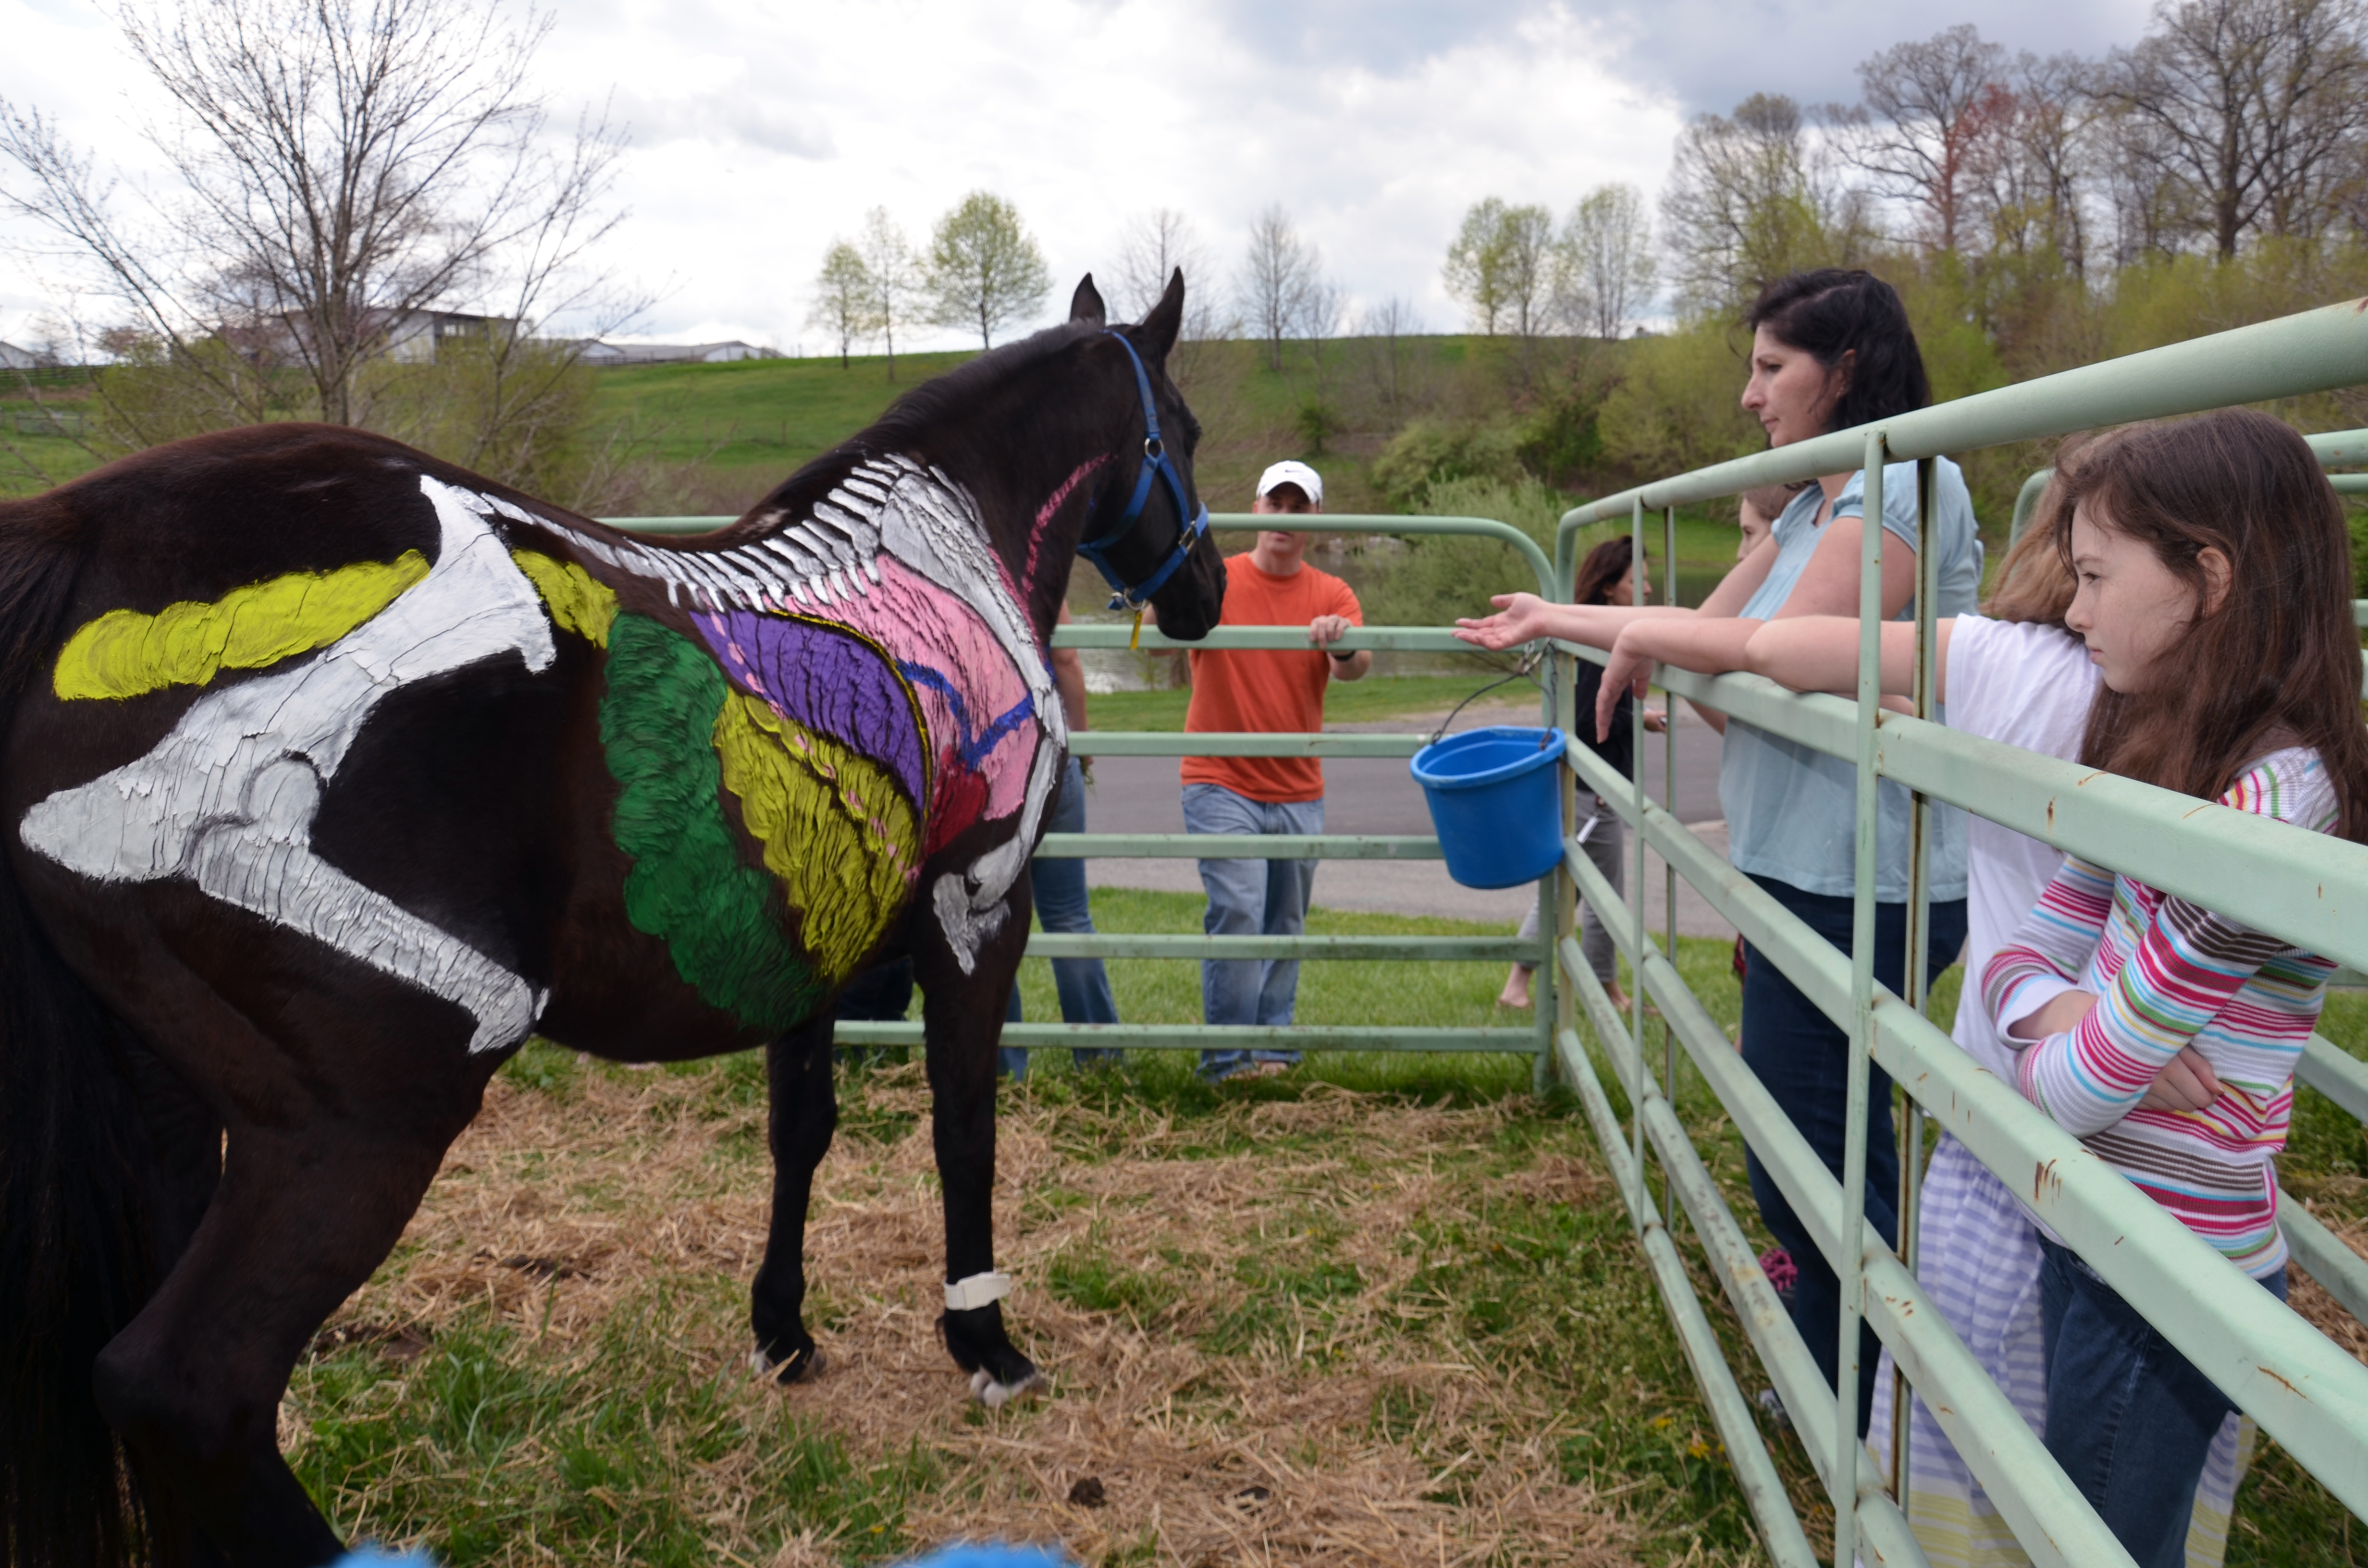 Painted horse at veterinary college's Annual Open House